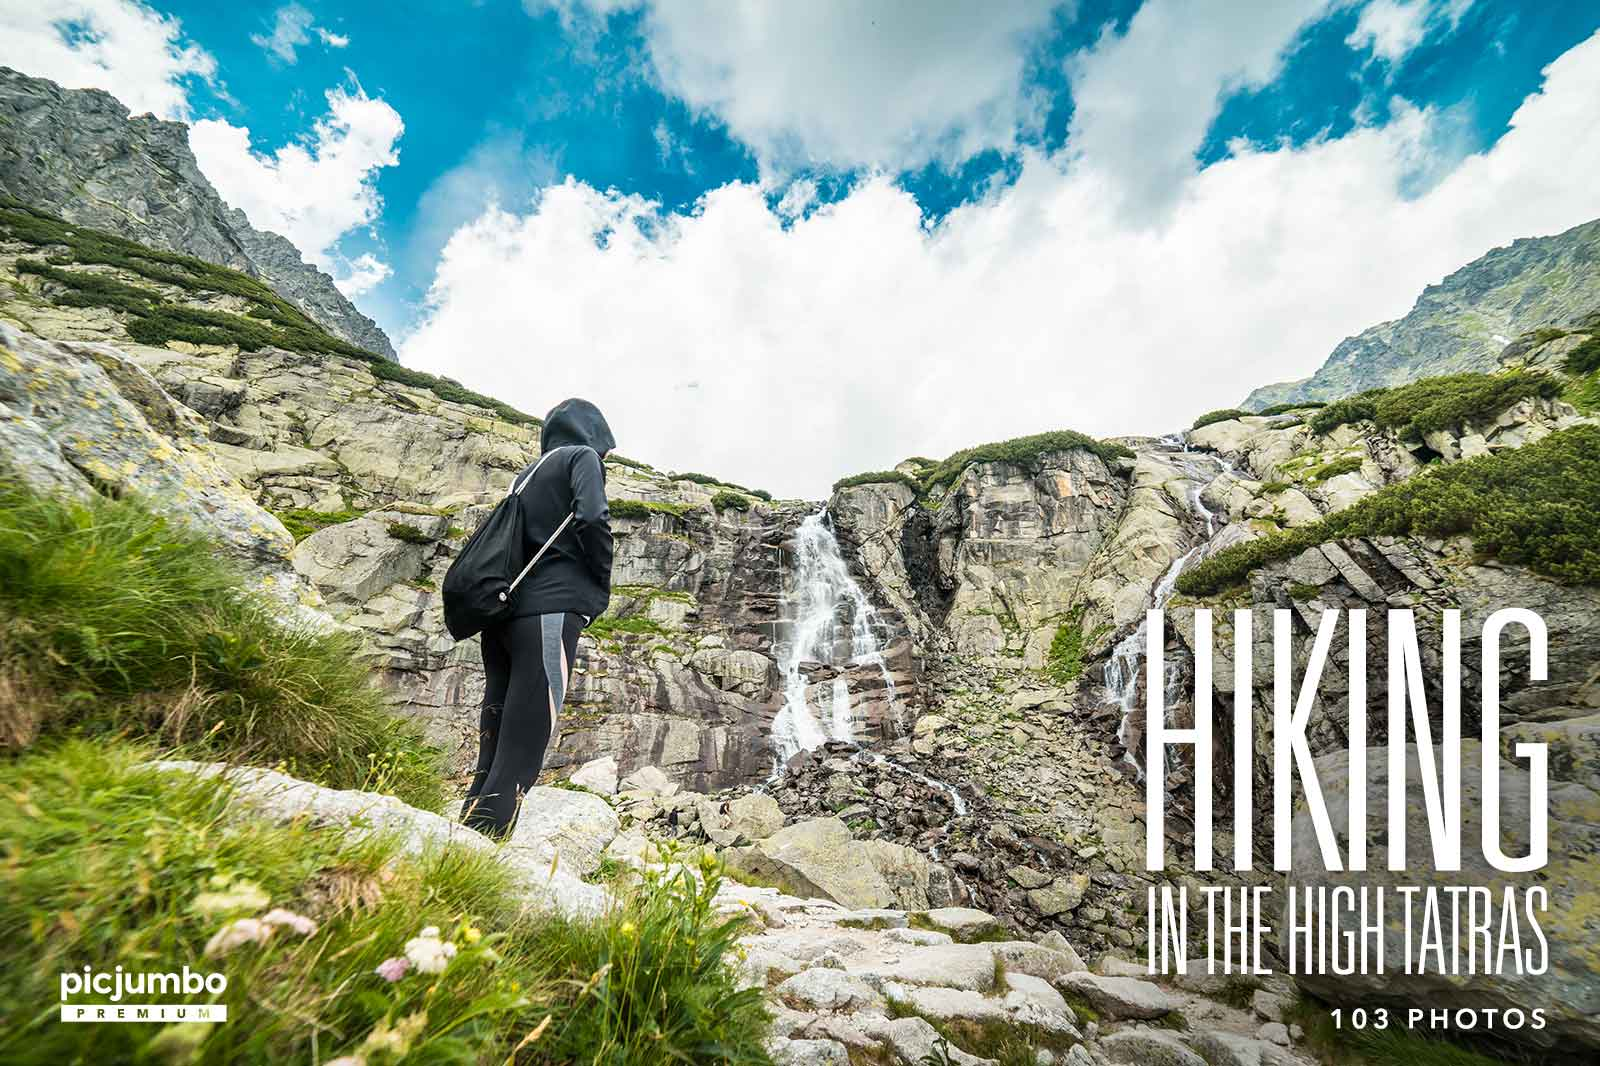 Hiking — Join PREMIUM and get instant access to this collection!